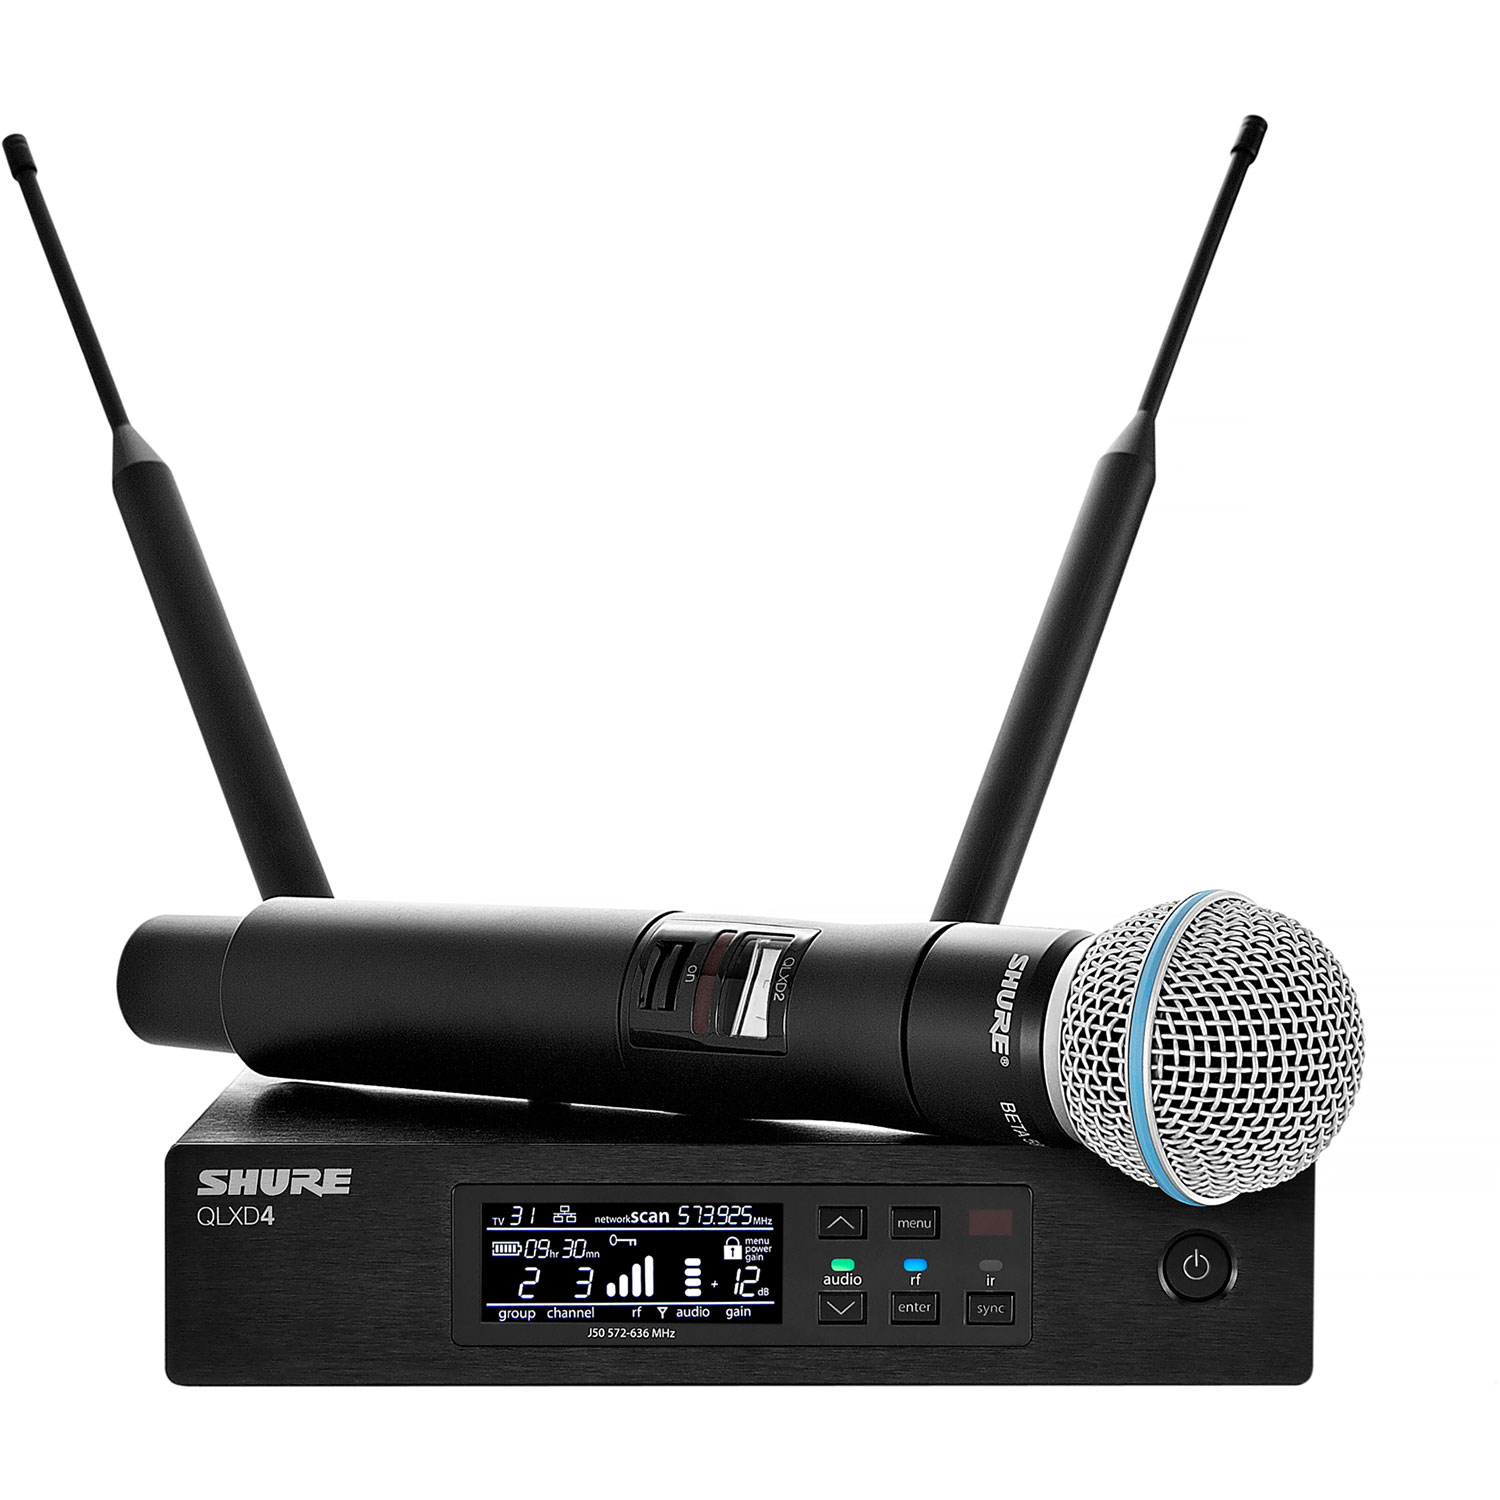 Shure QLX-D Wireless System with BETA58 Microphone, QLXD2 Handheld Transmitter, and QLXD4 Receiver